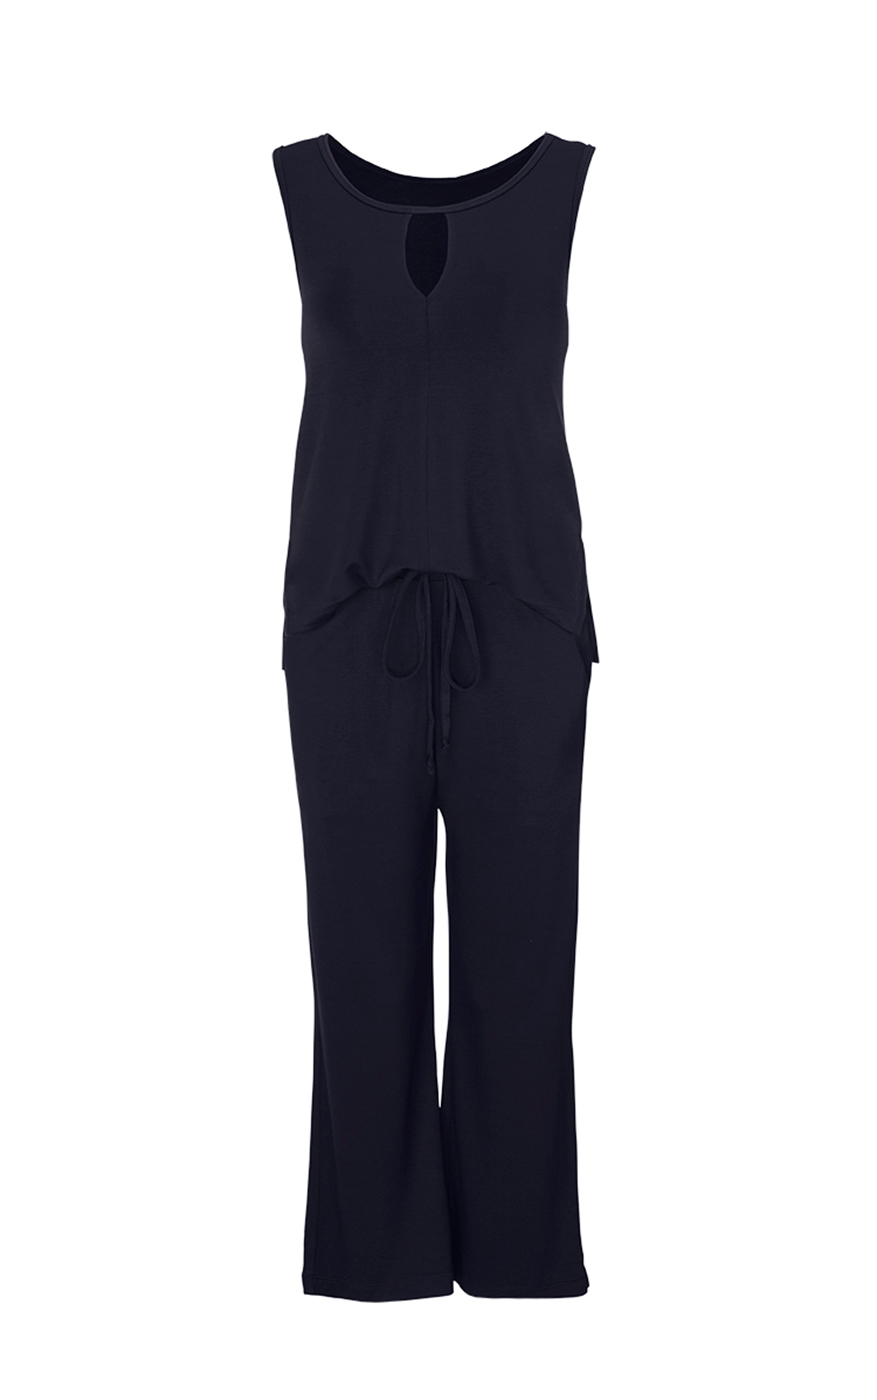 cabi's Summer Jumpsuit